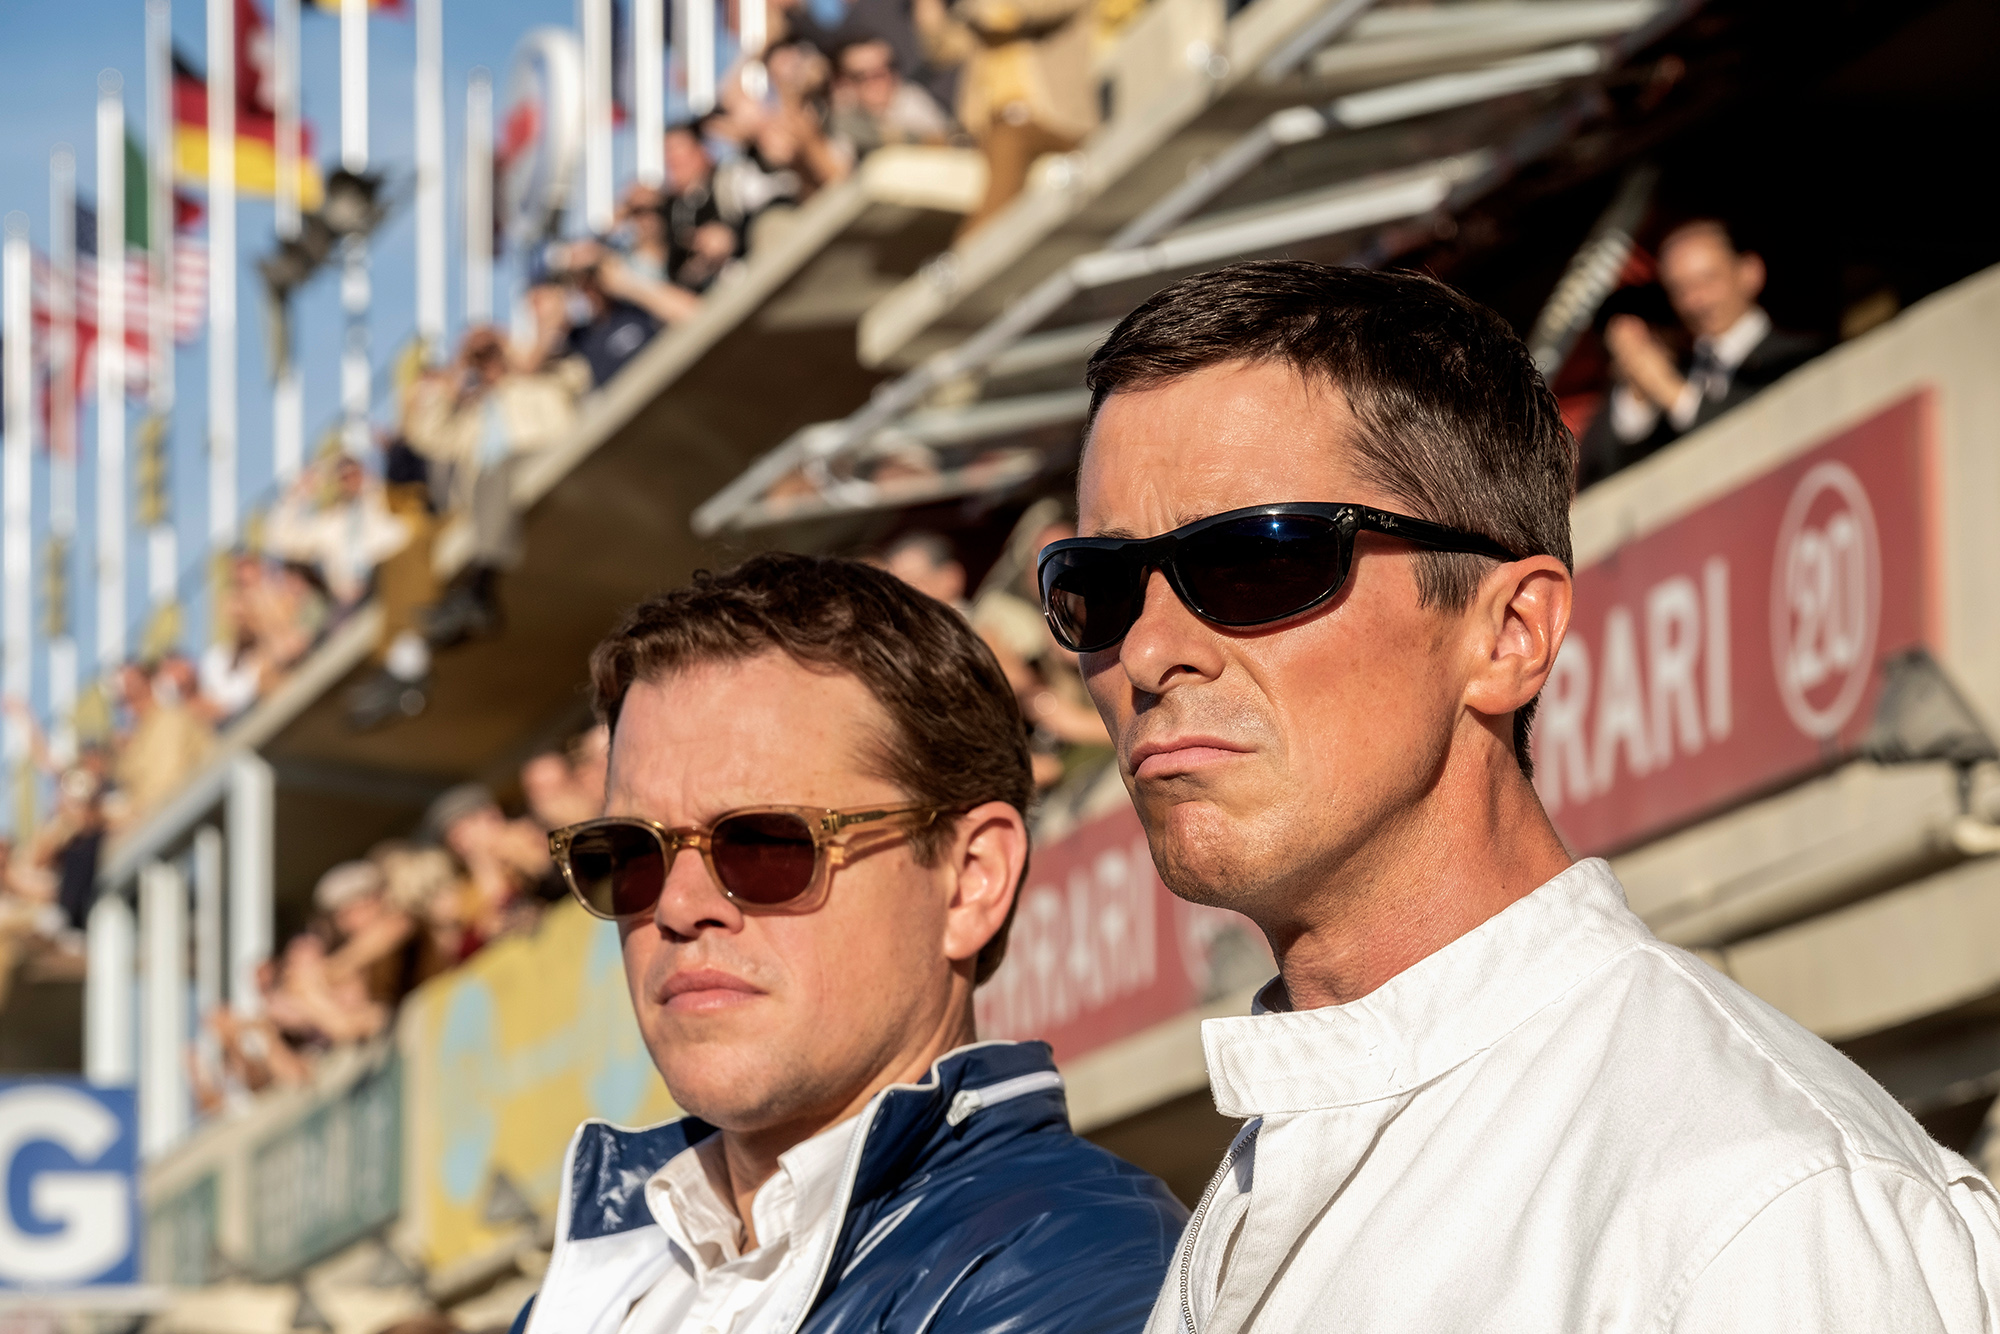 Christan Bale and Matt Damon in Le Mans 66 - the story of Ford vs Ferrari at Le Mans